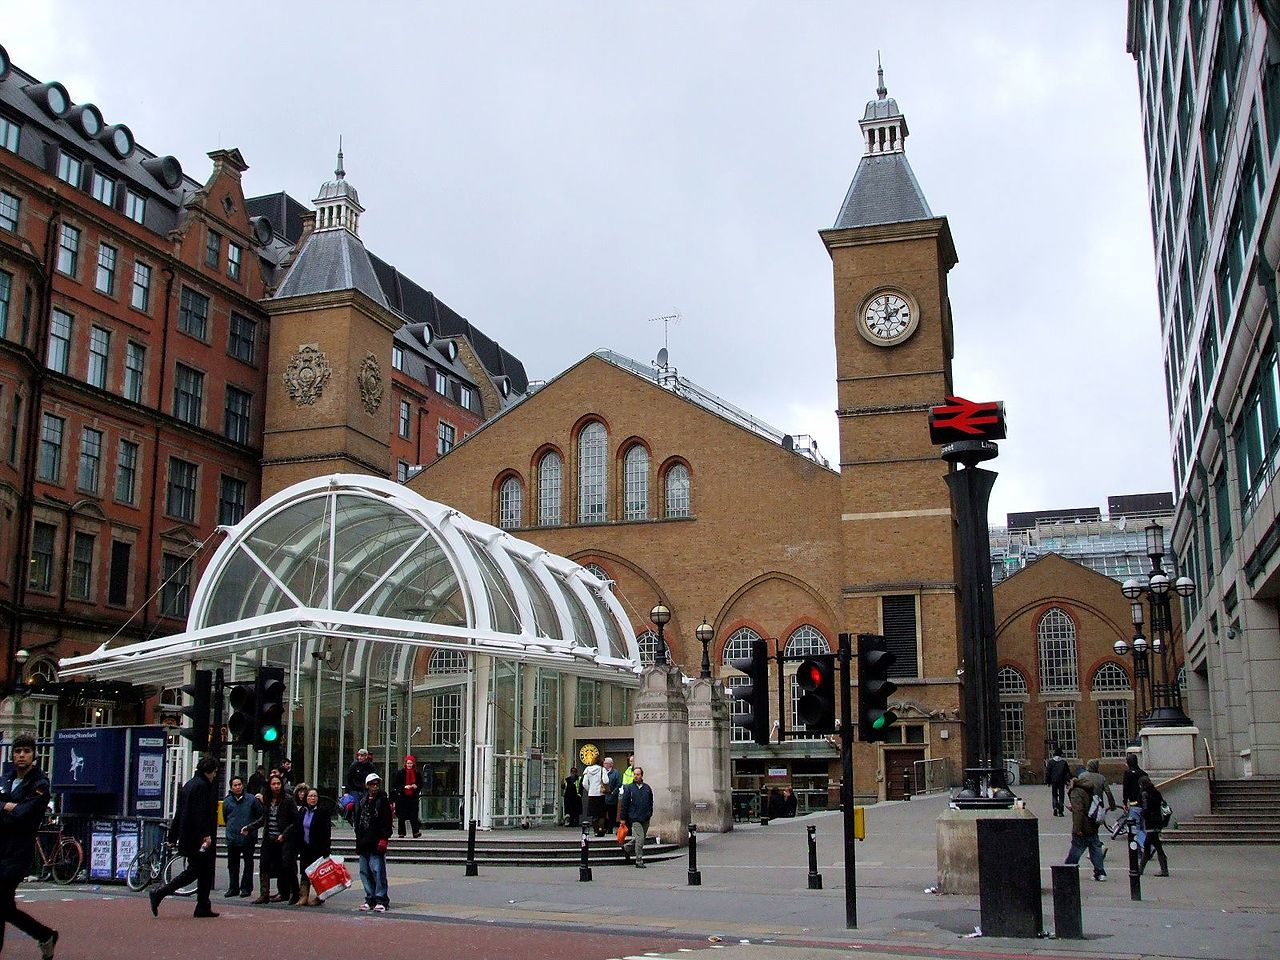 Forex liverpool street station